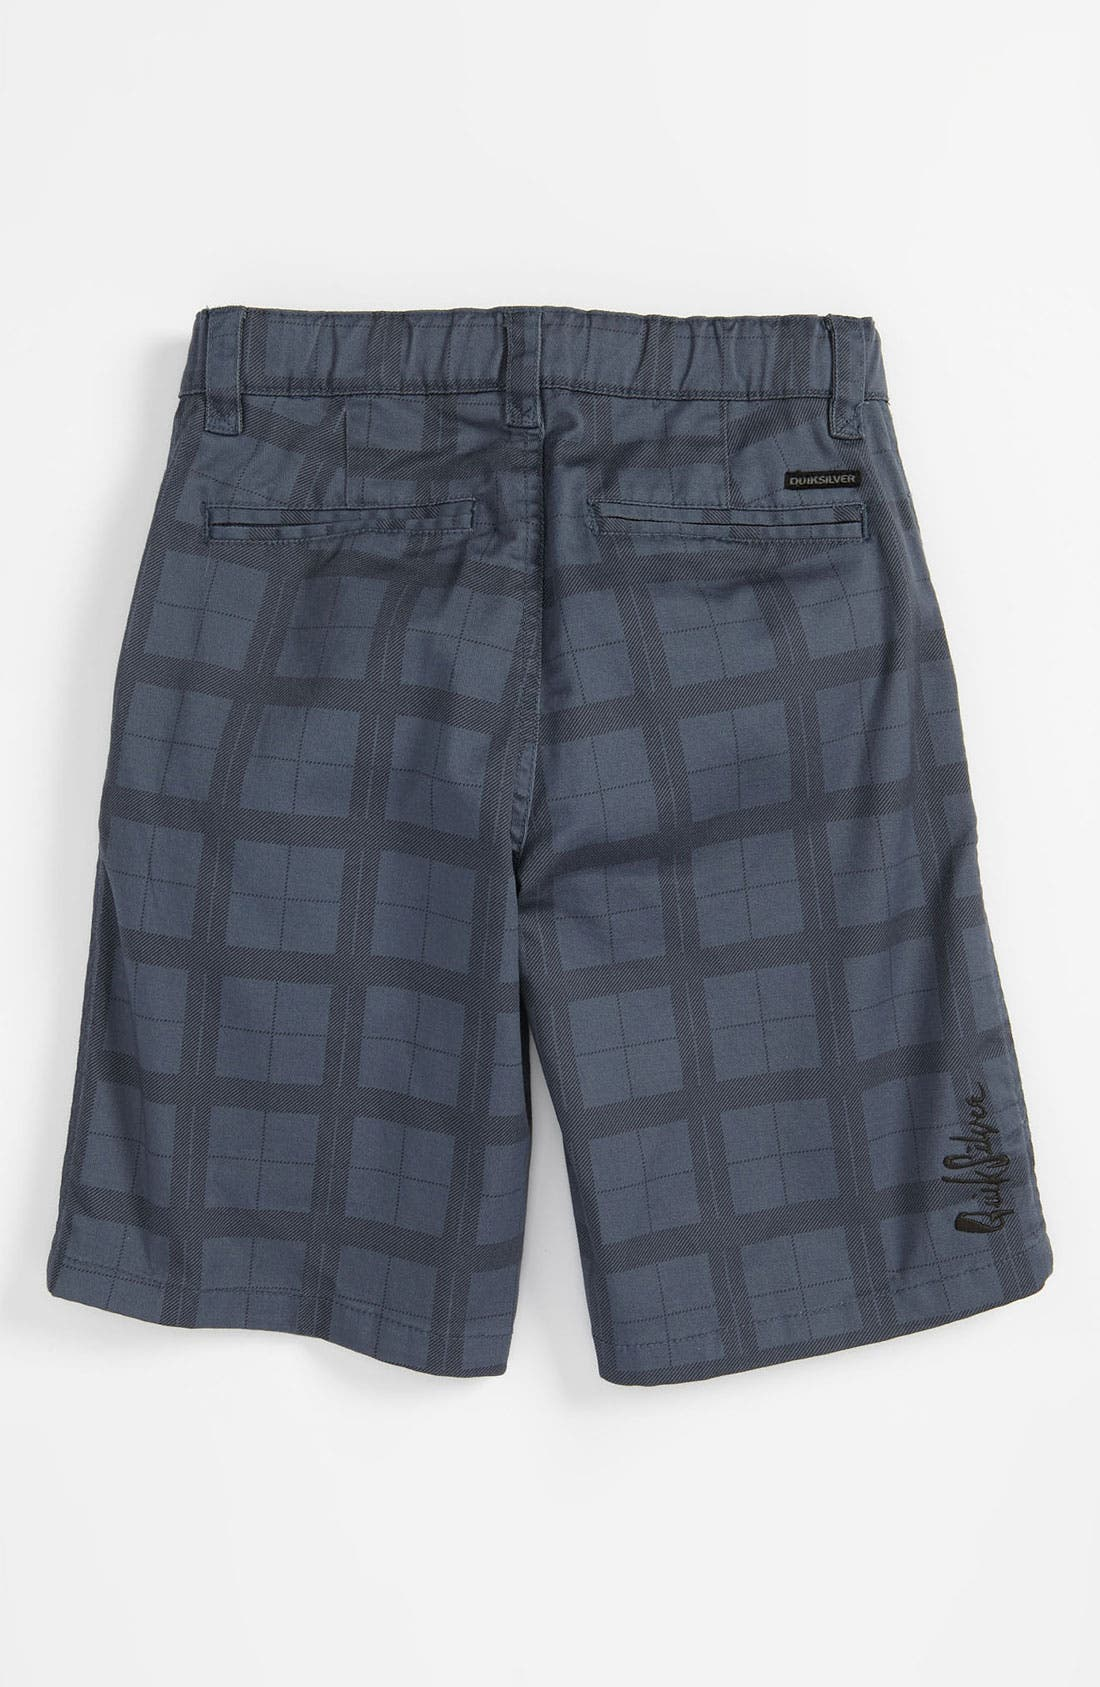 Alternate Image 2  - Quiksilver 'Uno Surplus' Shorts (Little Boys)